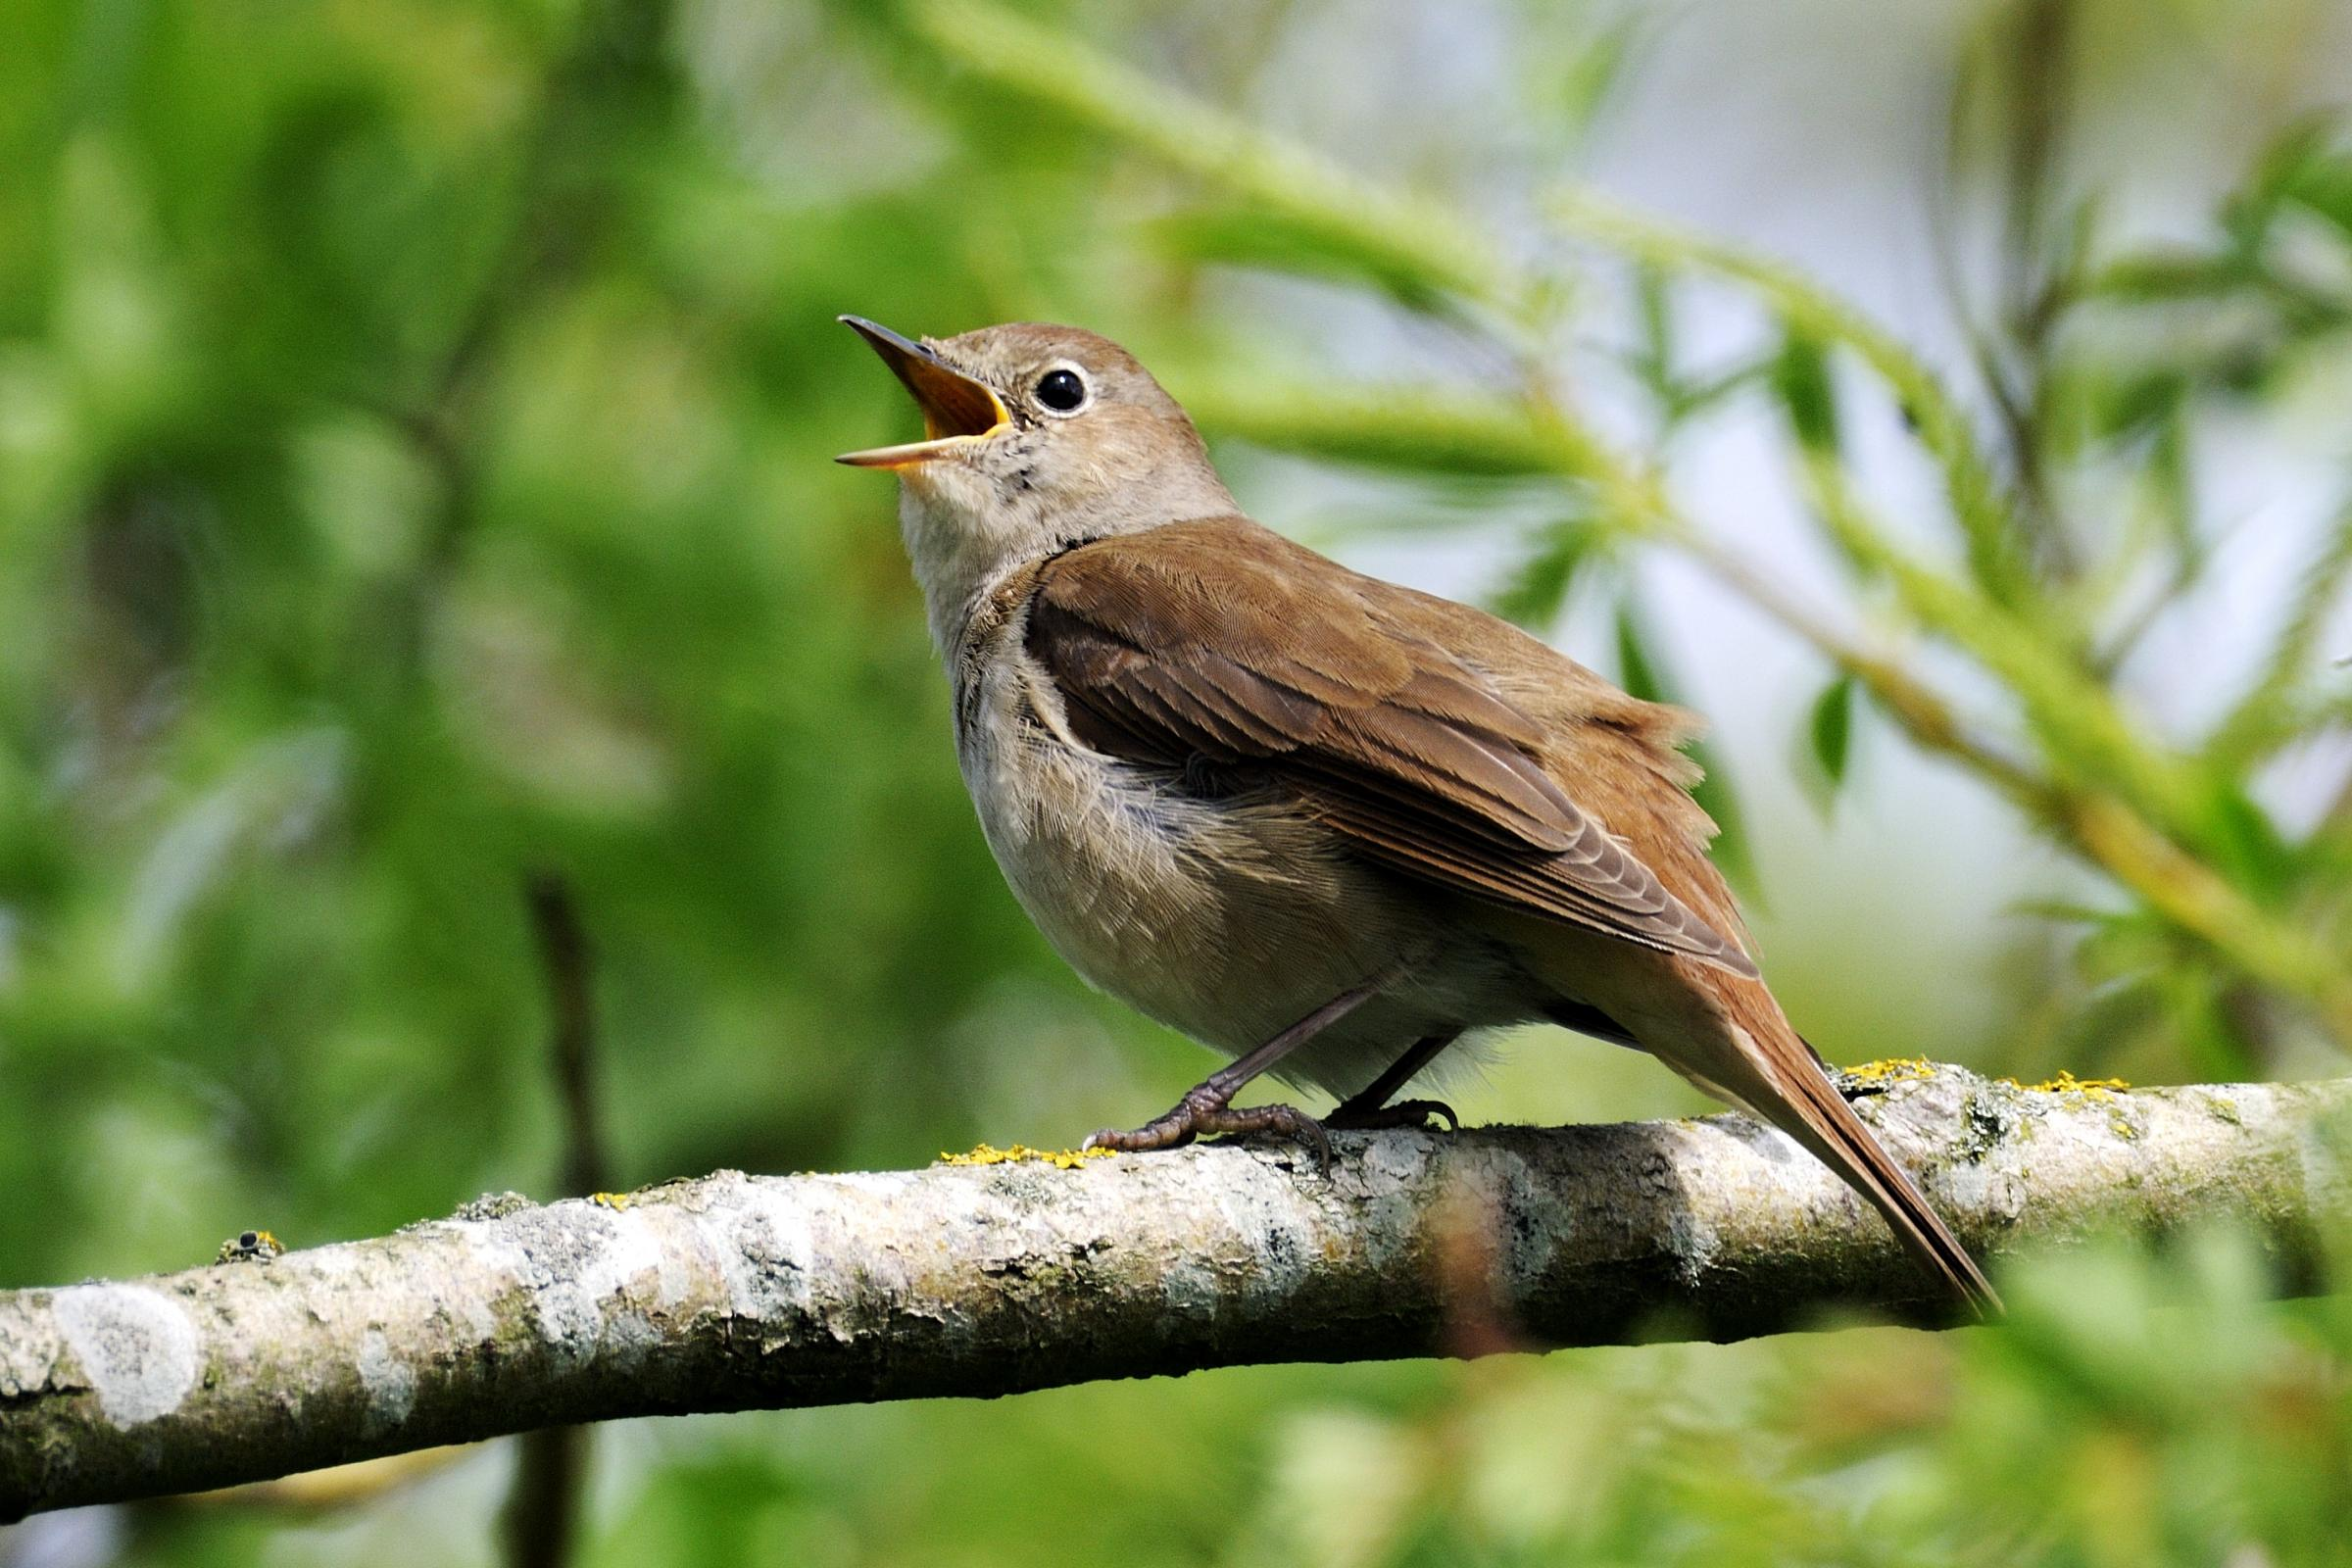 A nightingale singing in a tress in Oxfordshire